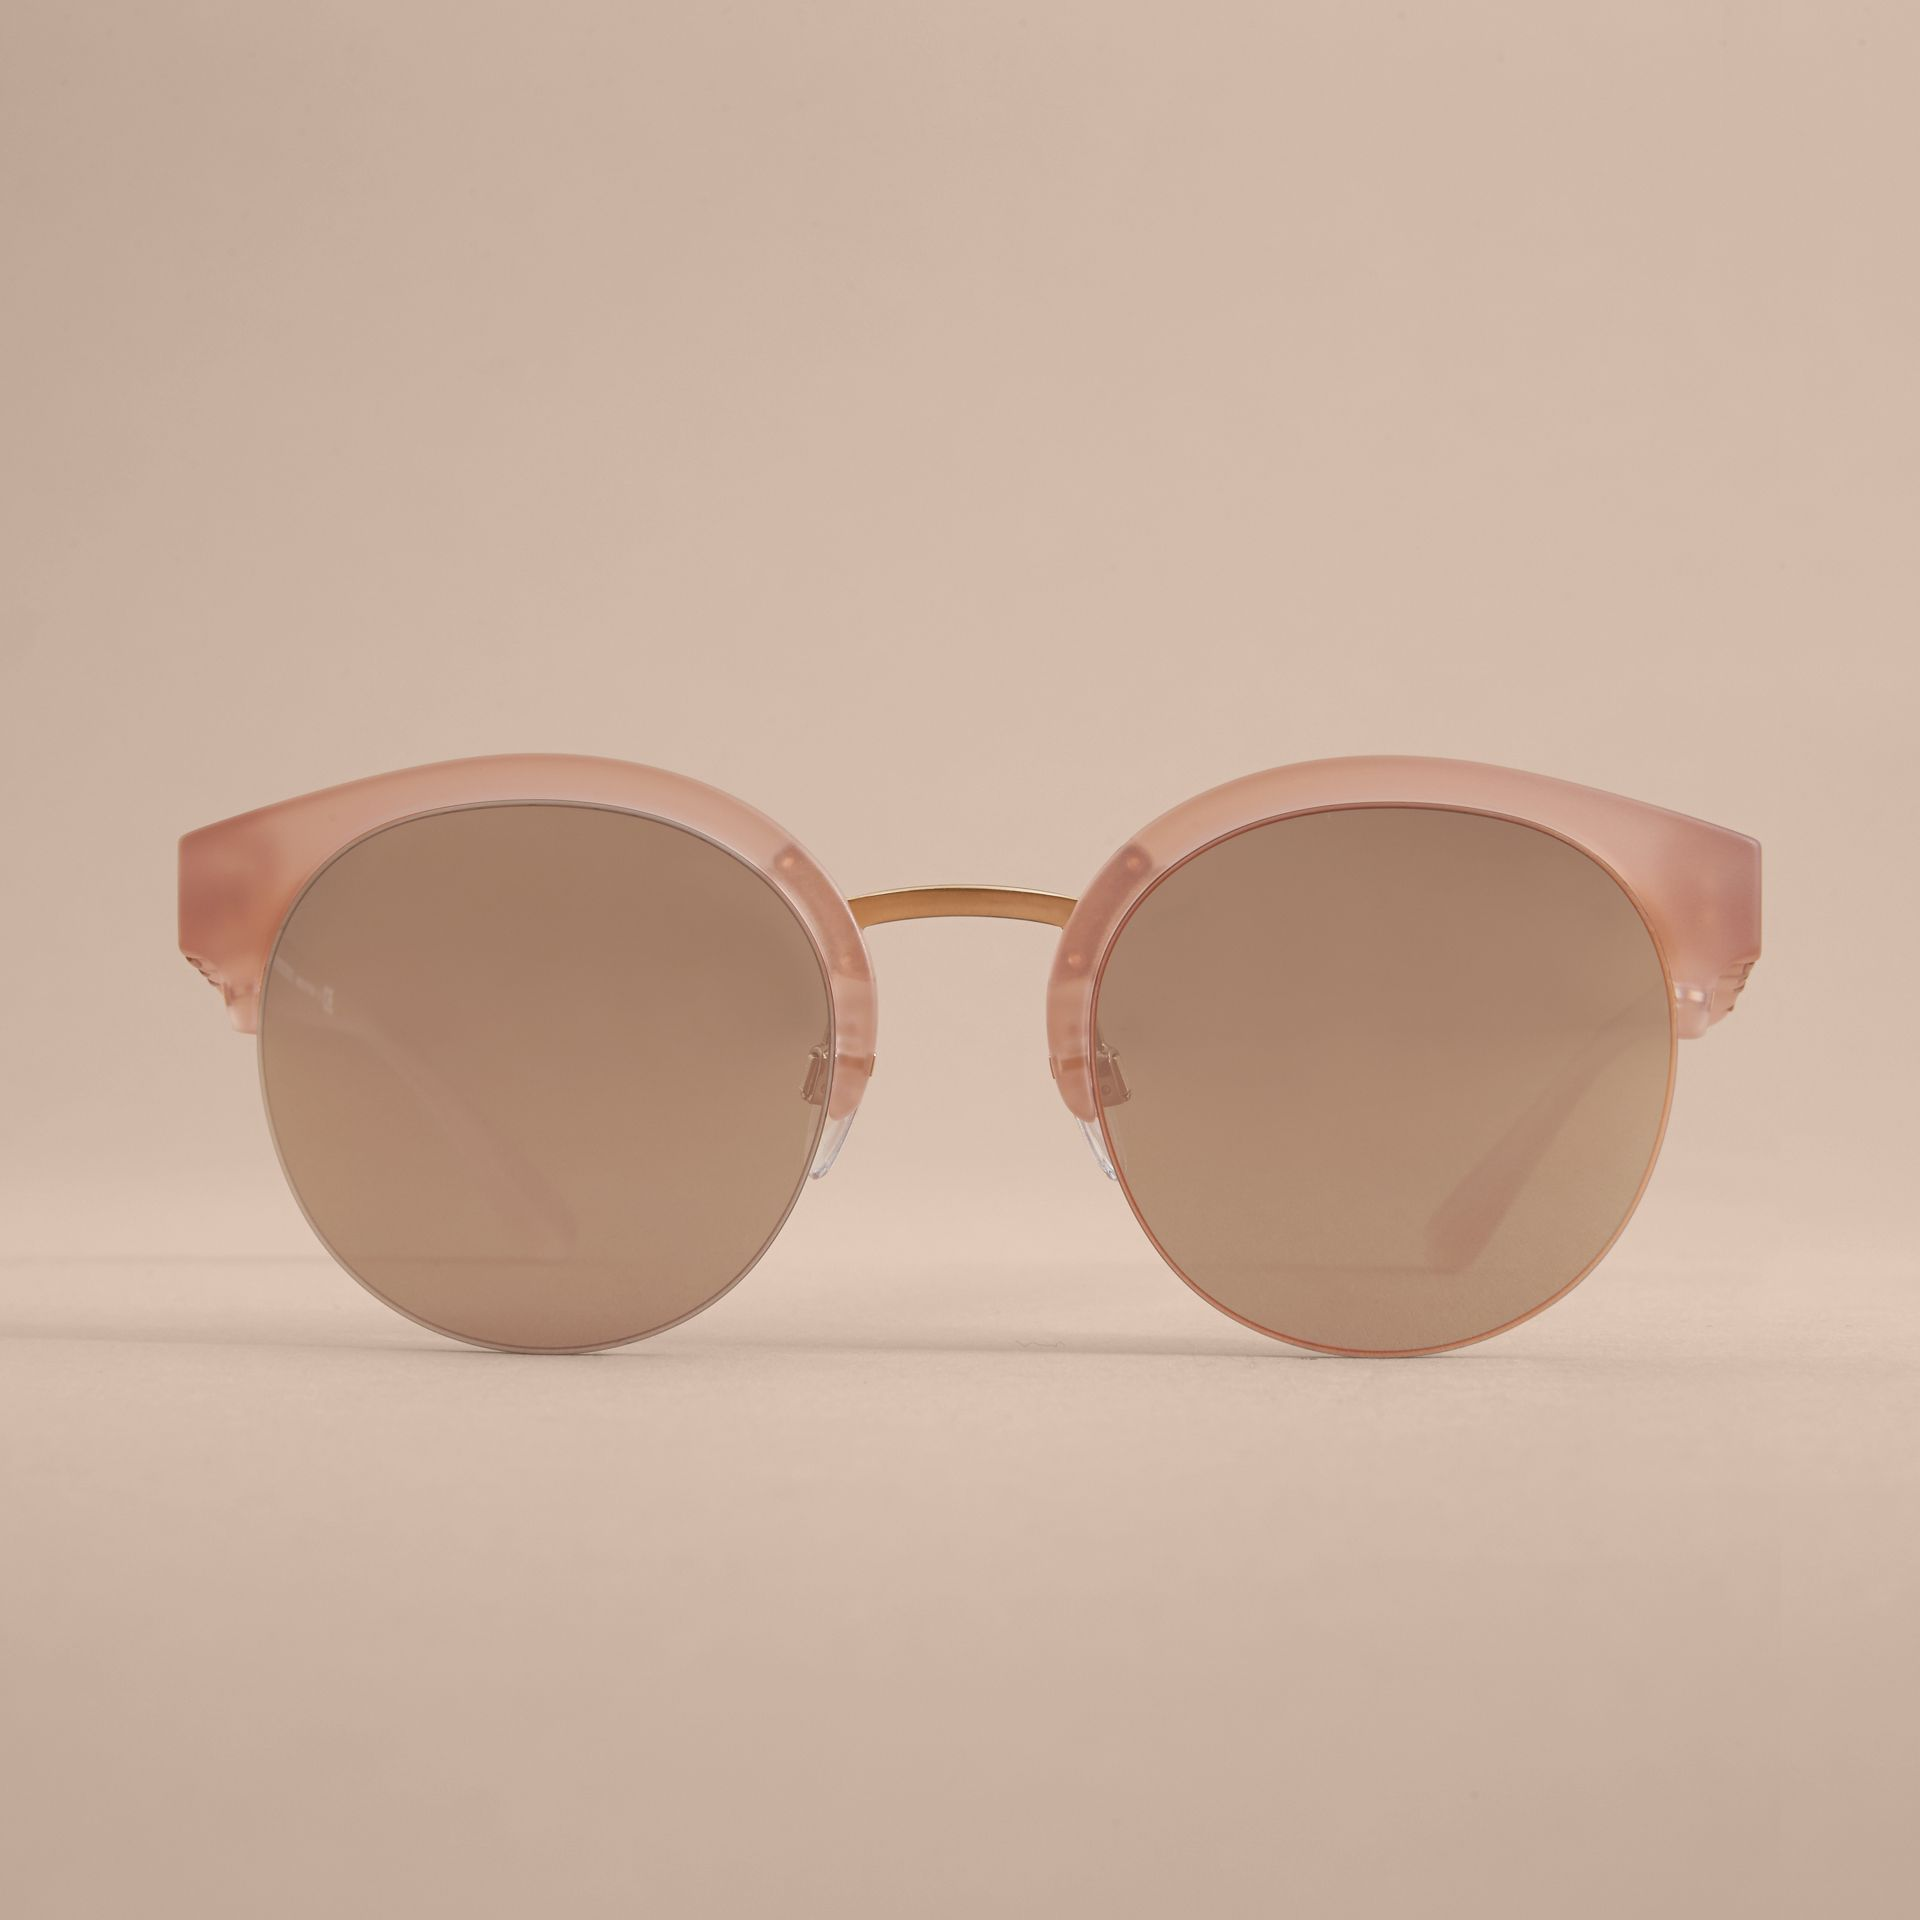 Check Detail Round Half-frame Sunglasses in Nude - Women | Burberry Singapore - gallery image 3